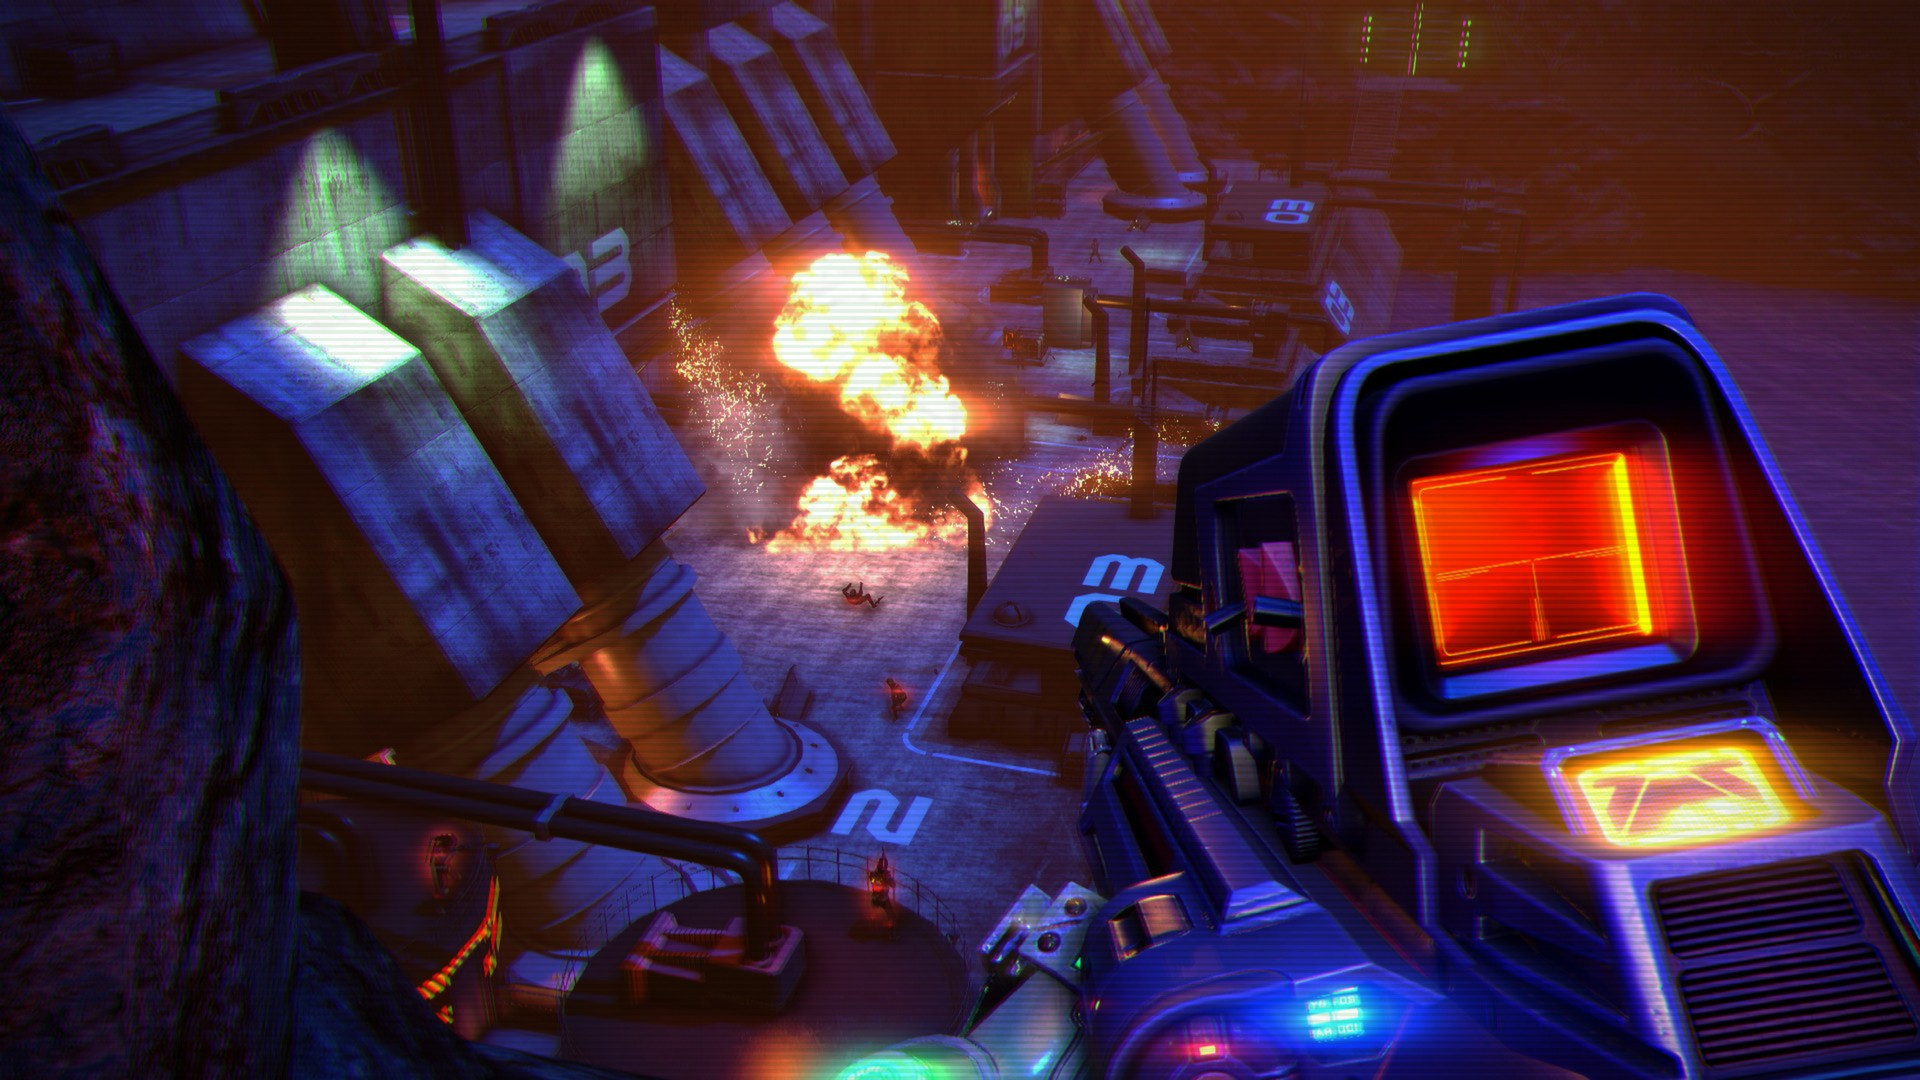 Far Cry 3: Blood Dragon - Game Uplay account